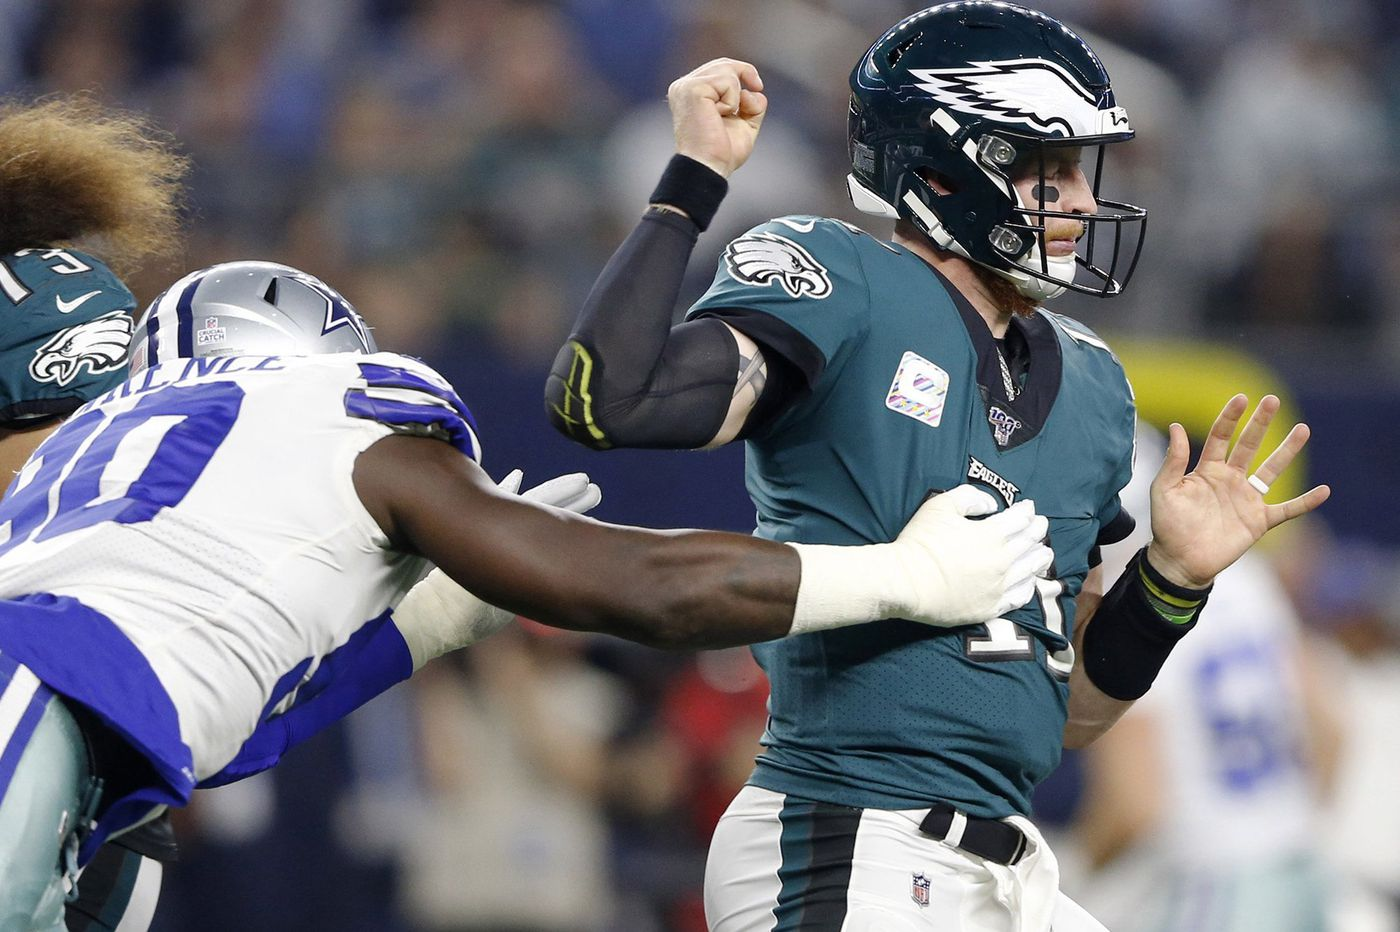 Eagles film breakdown: How to beat the Cowboys